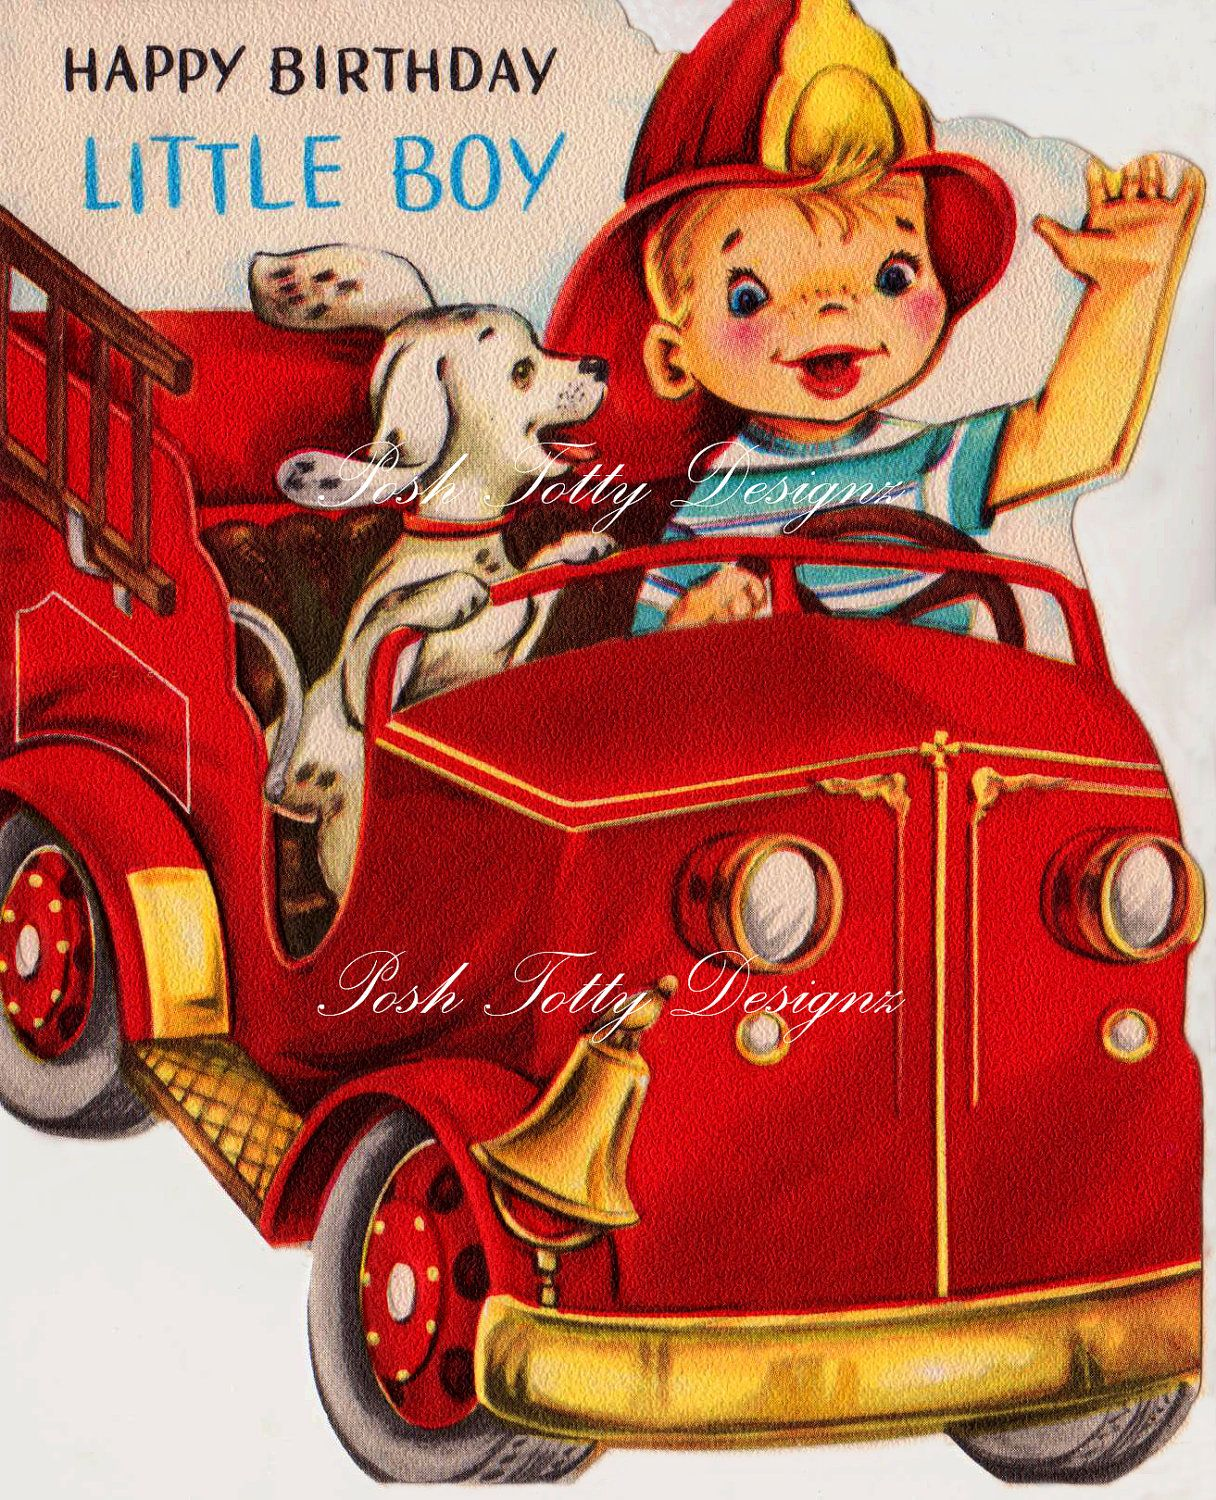 1950s Happy Birthday Little Boy Fire Chief Vintage Greetings Card – Birthday Greeting Cards for Boys